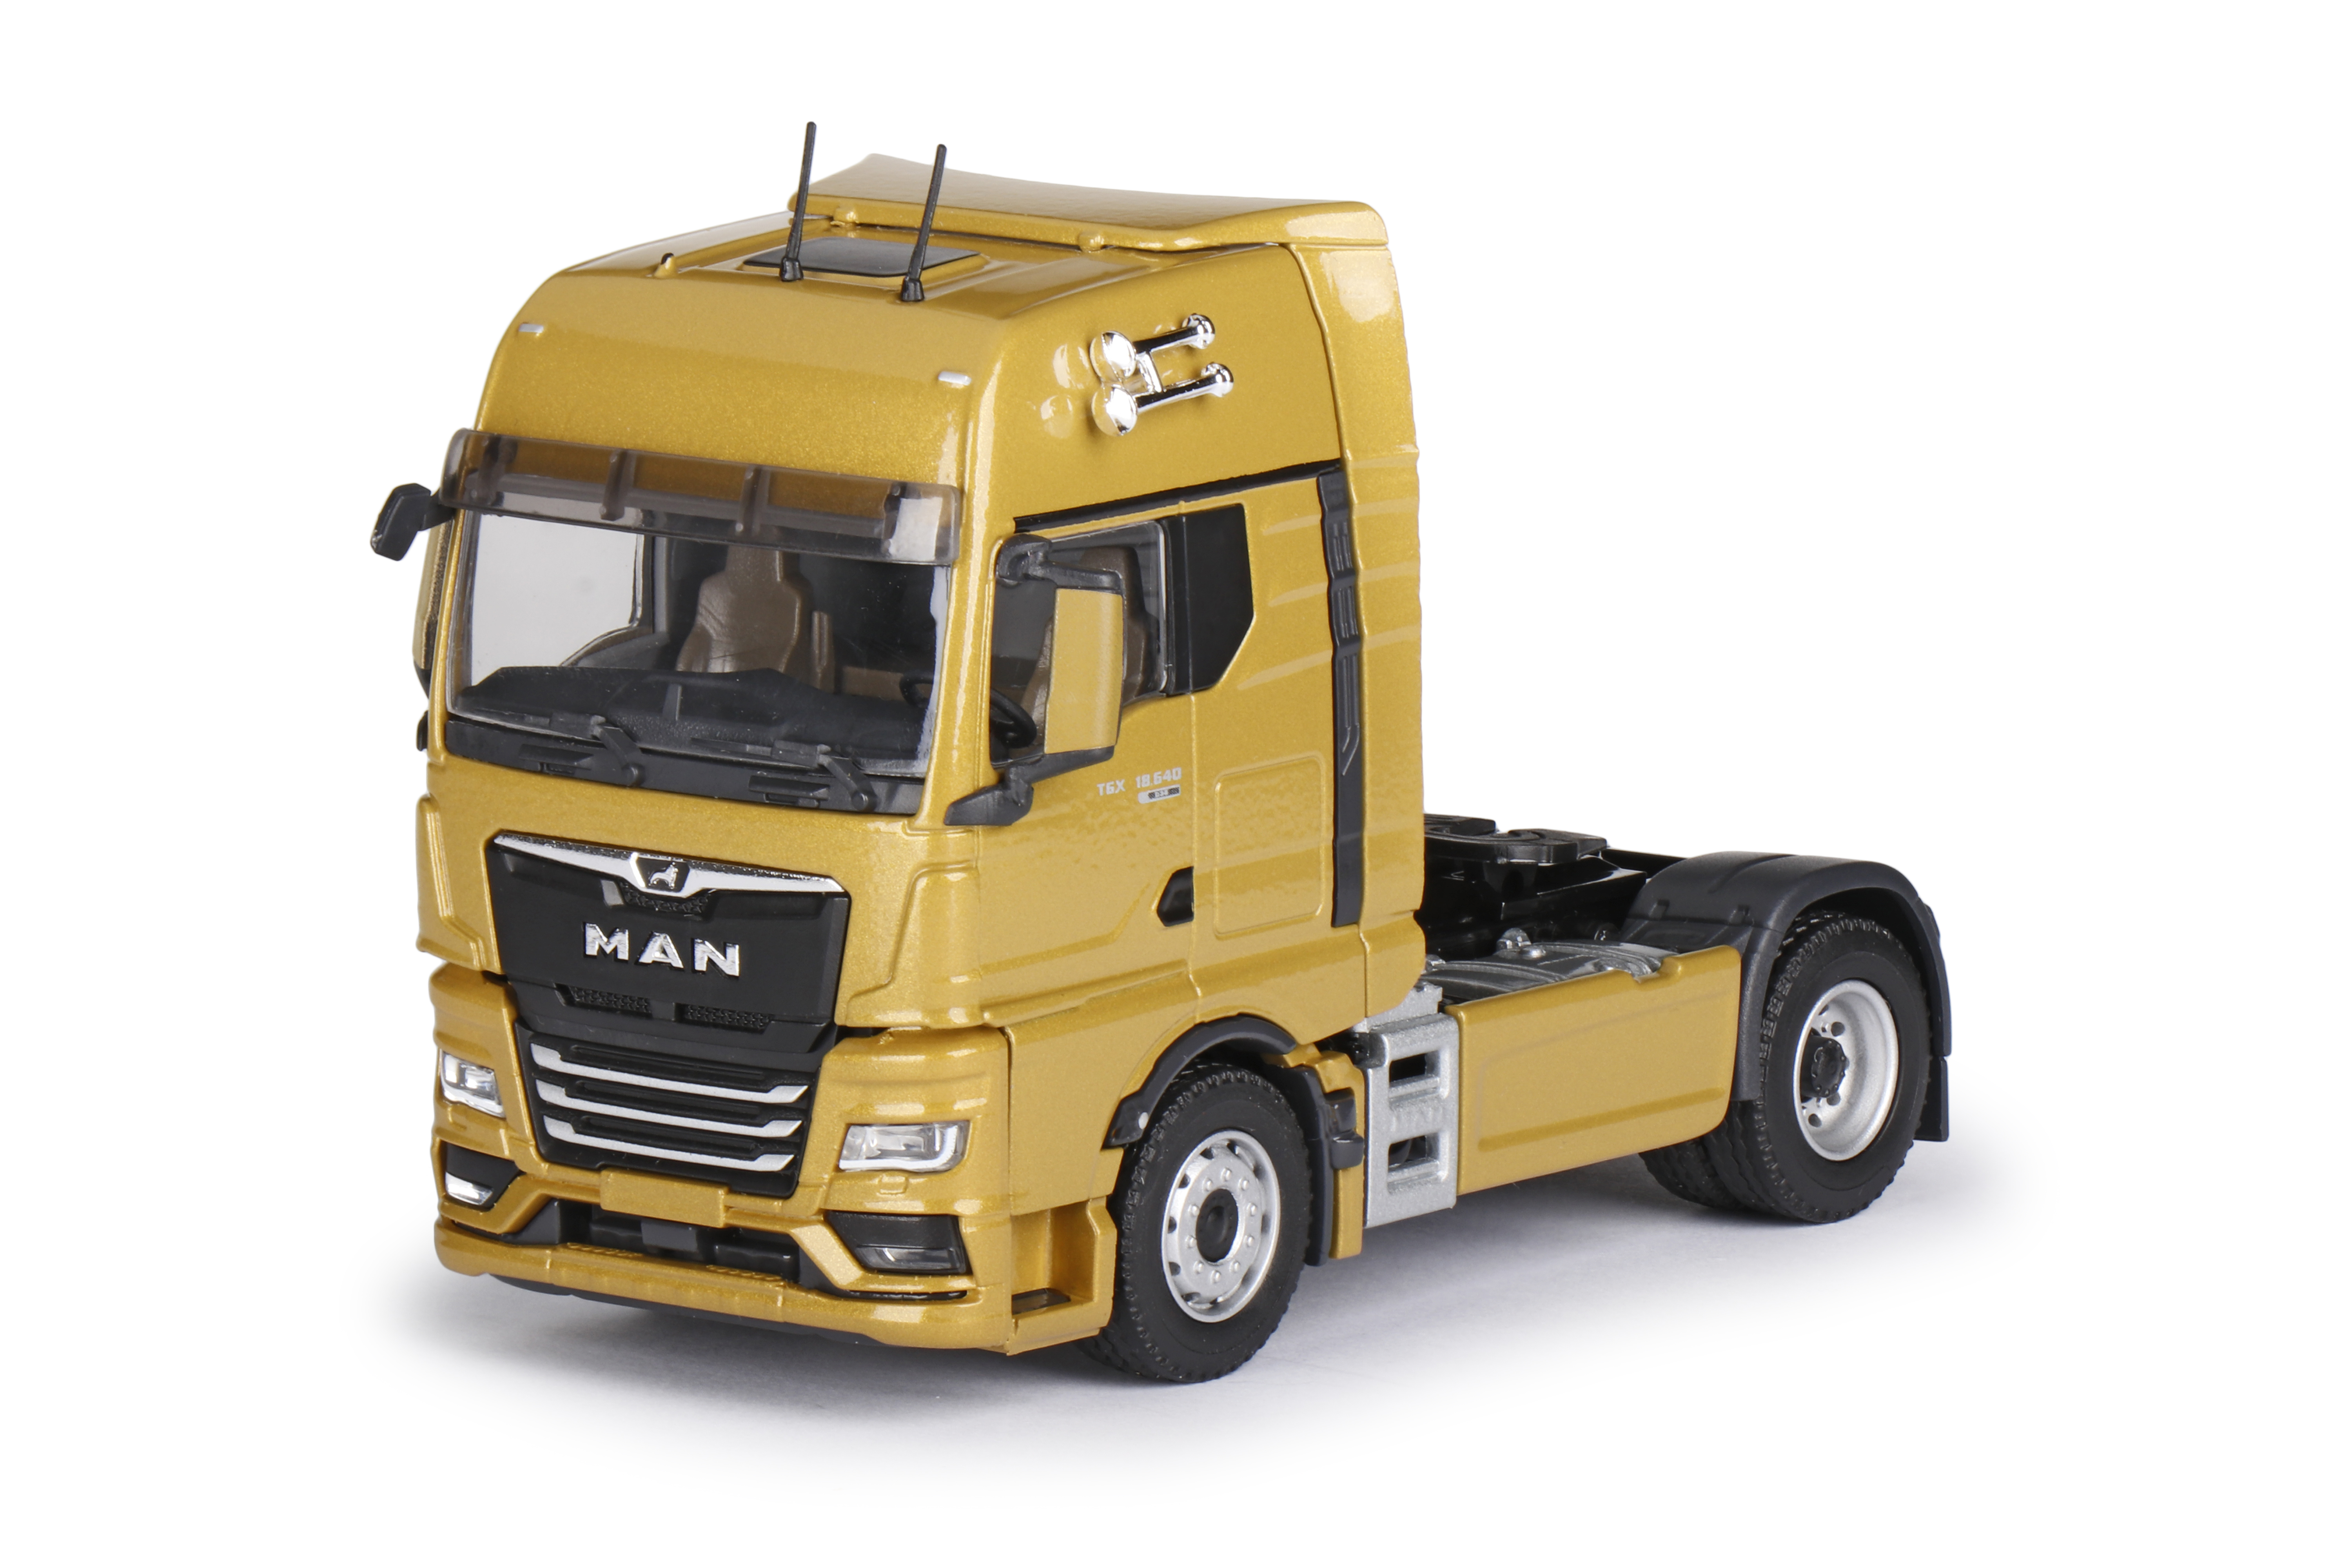 Well roared, lion - the new MAN Truck generation in 1:50